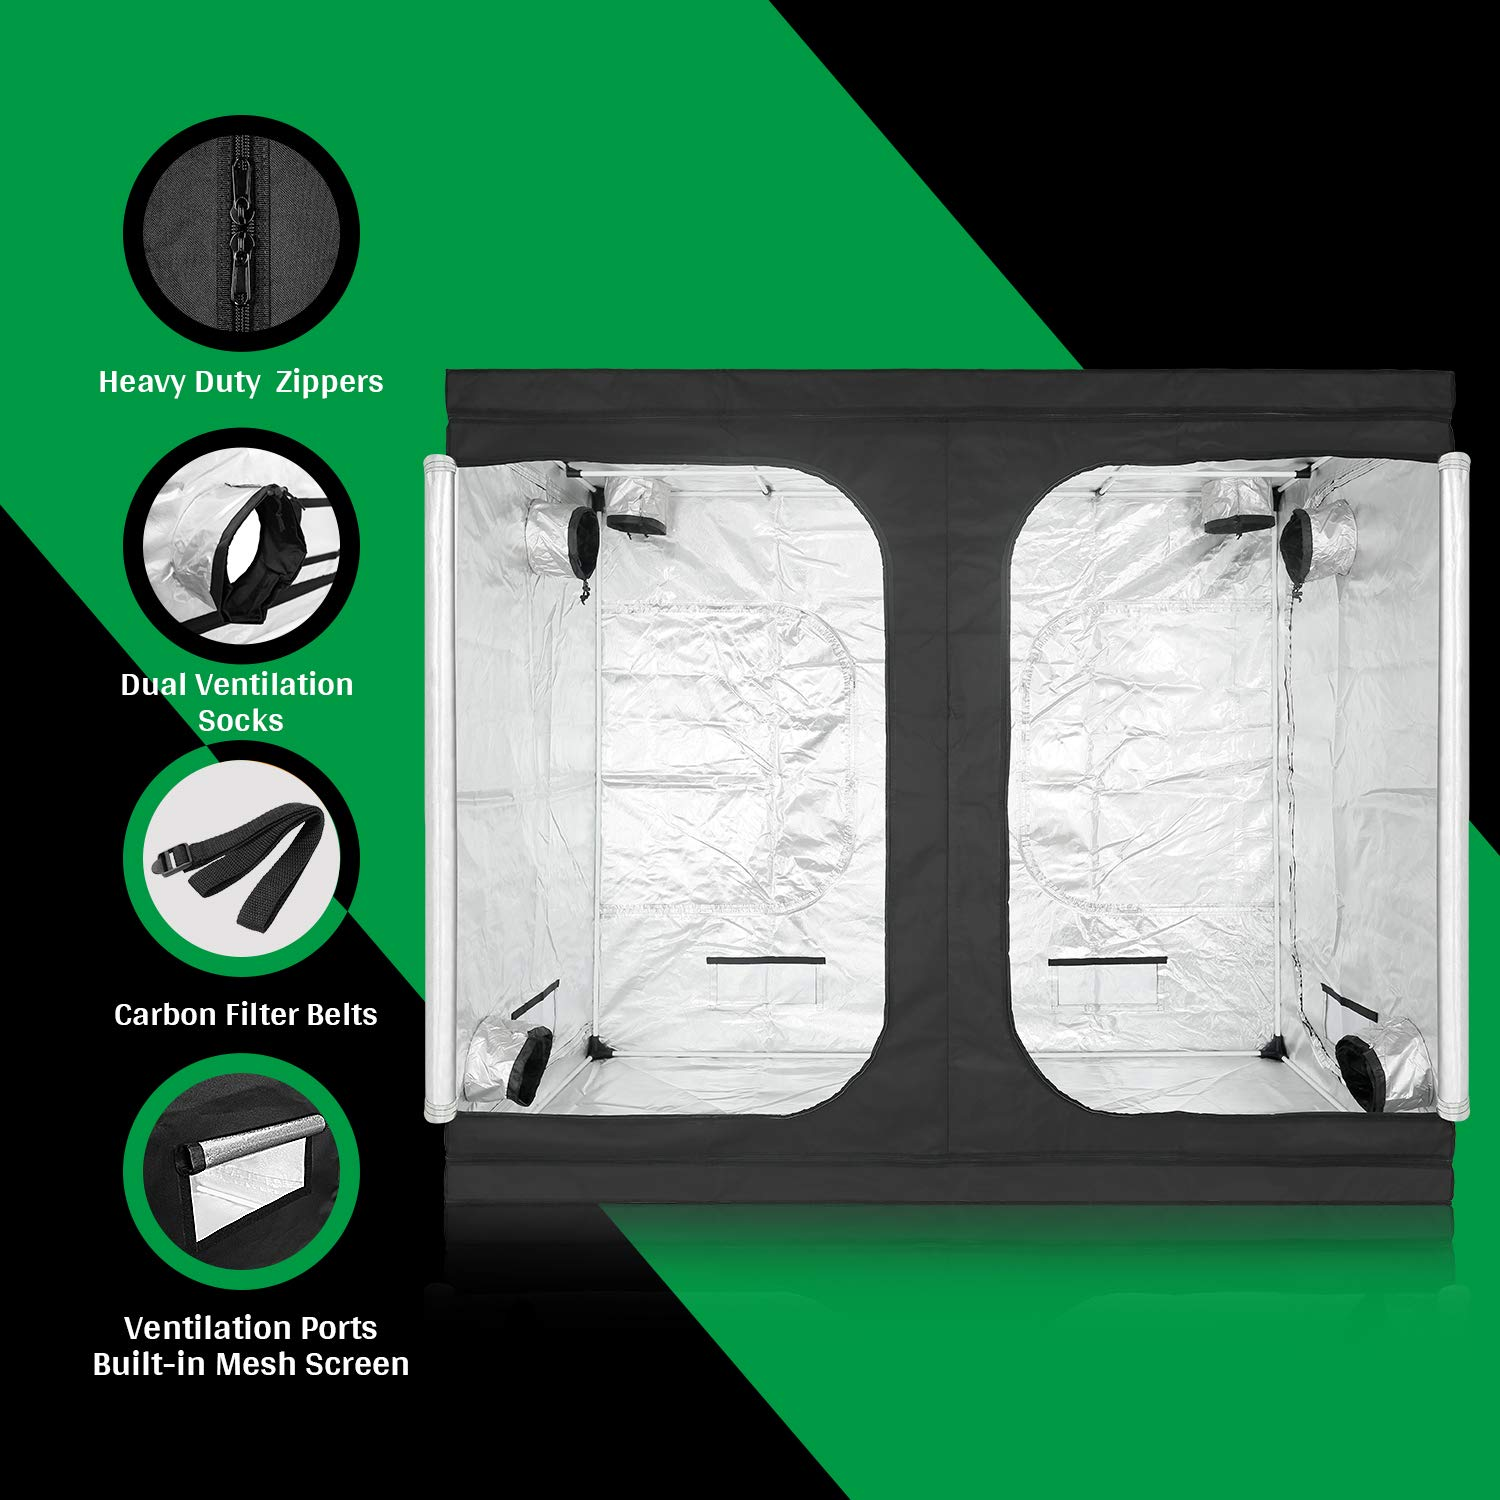 240x120x200 CM GA Grow Tent 96x48x80 240X120X200 CM C-Series Reflective Mylar Hydroponic Grow Tent with and Waterproof Floor Tray for Indoor Plant Growing 8x4